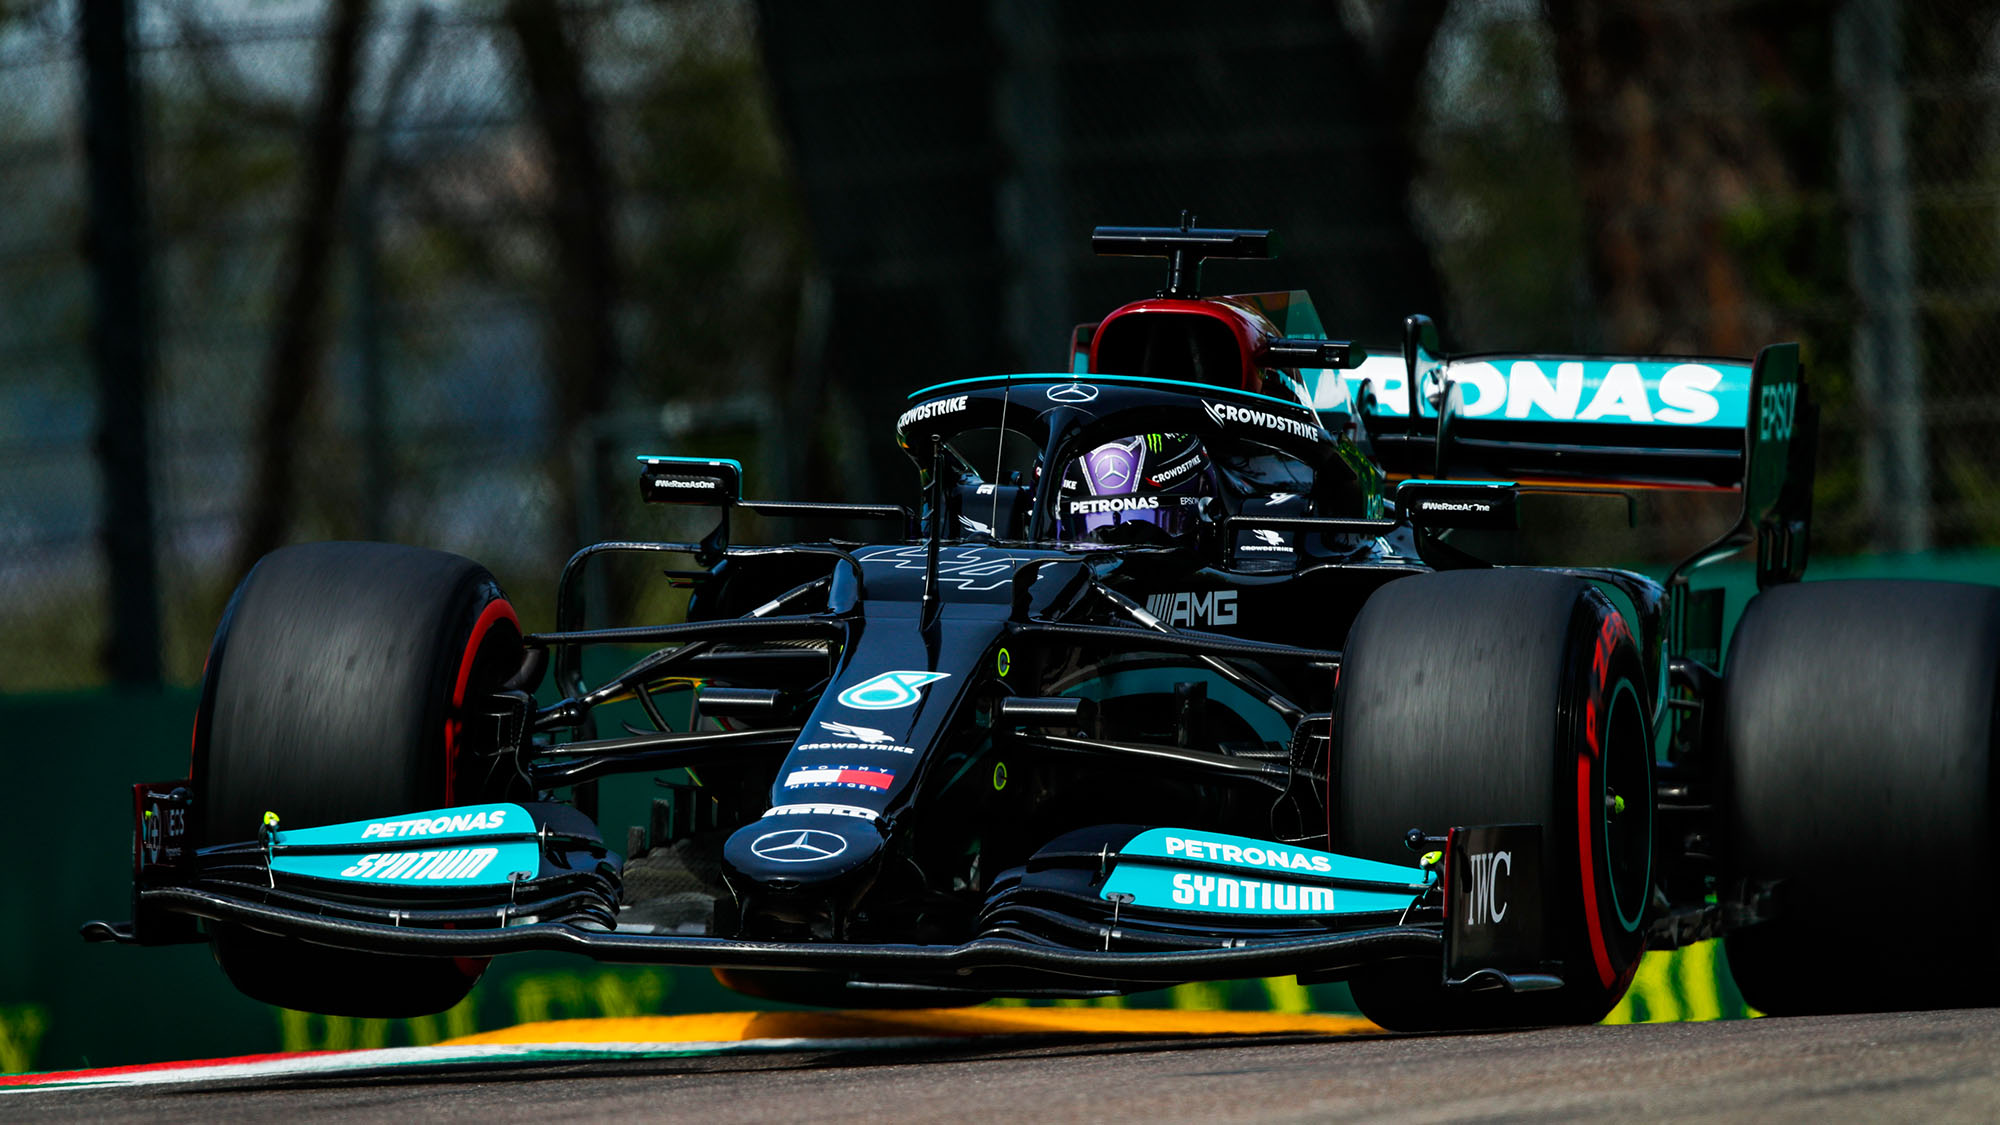 Hamilton on pole ahead of Perez in 2021 Emilia Romagna GP qualifying